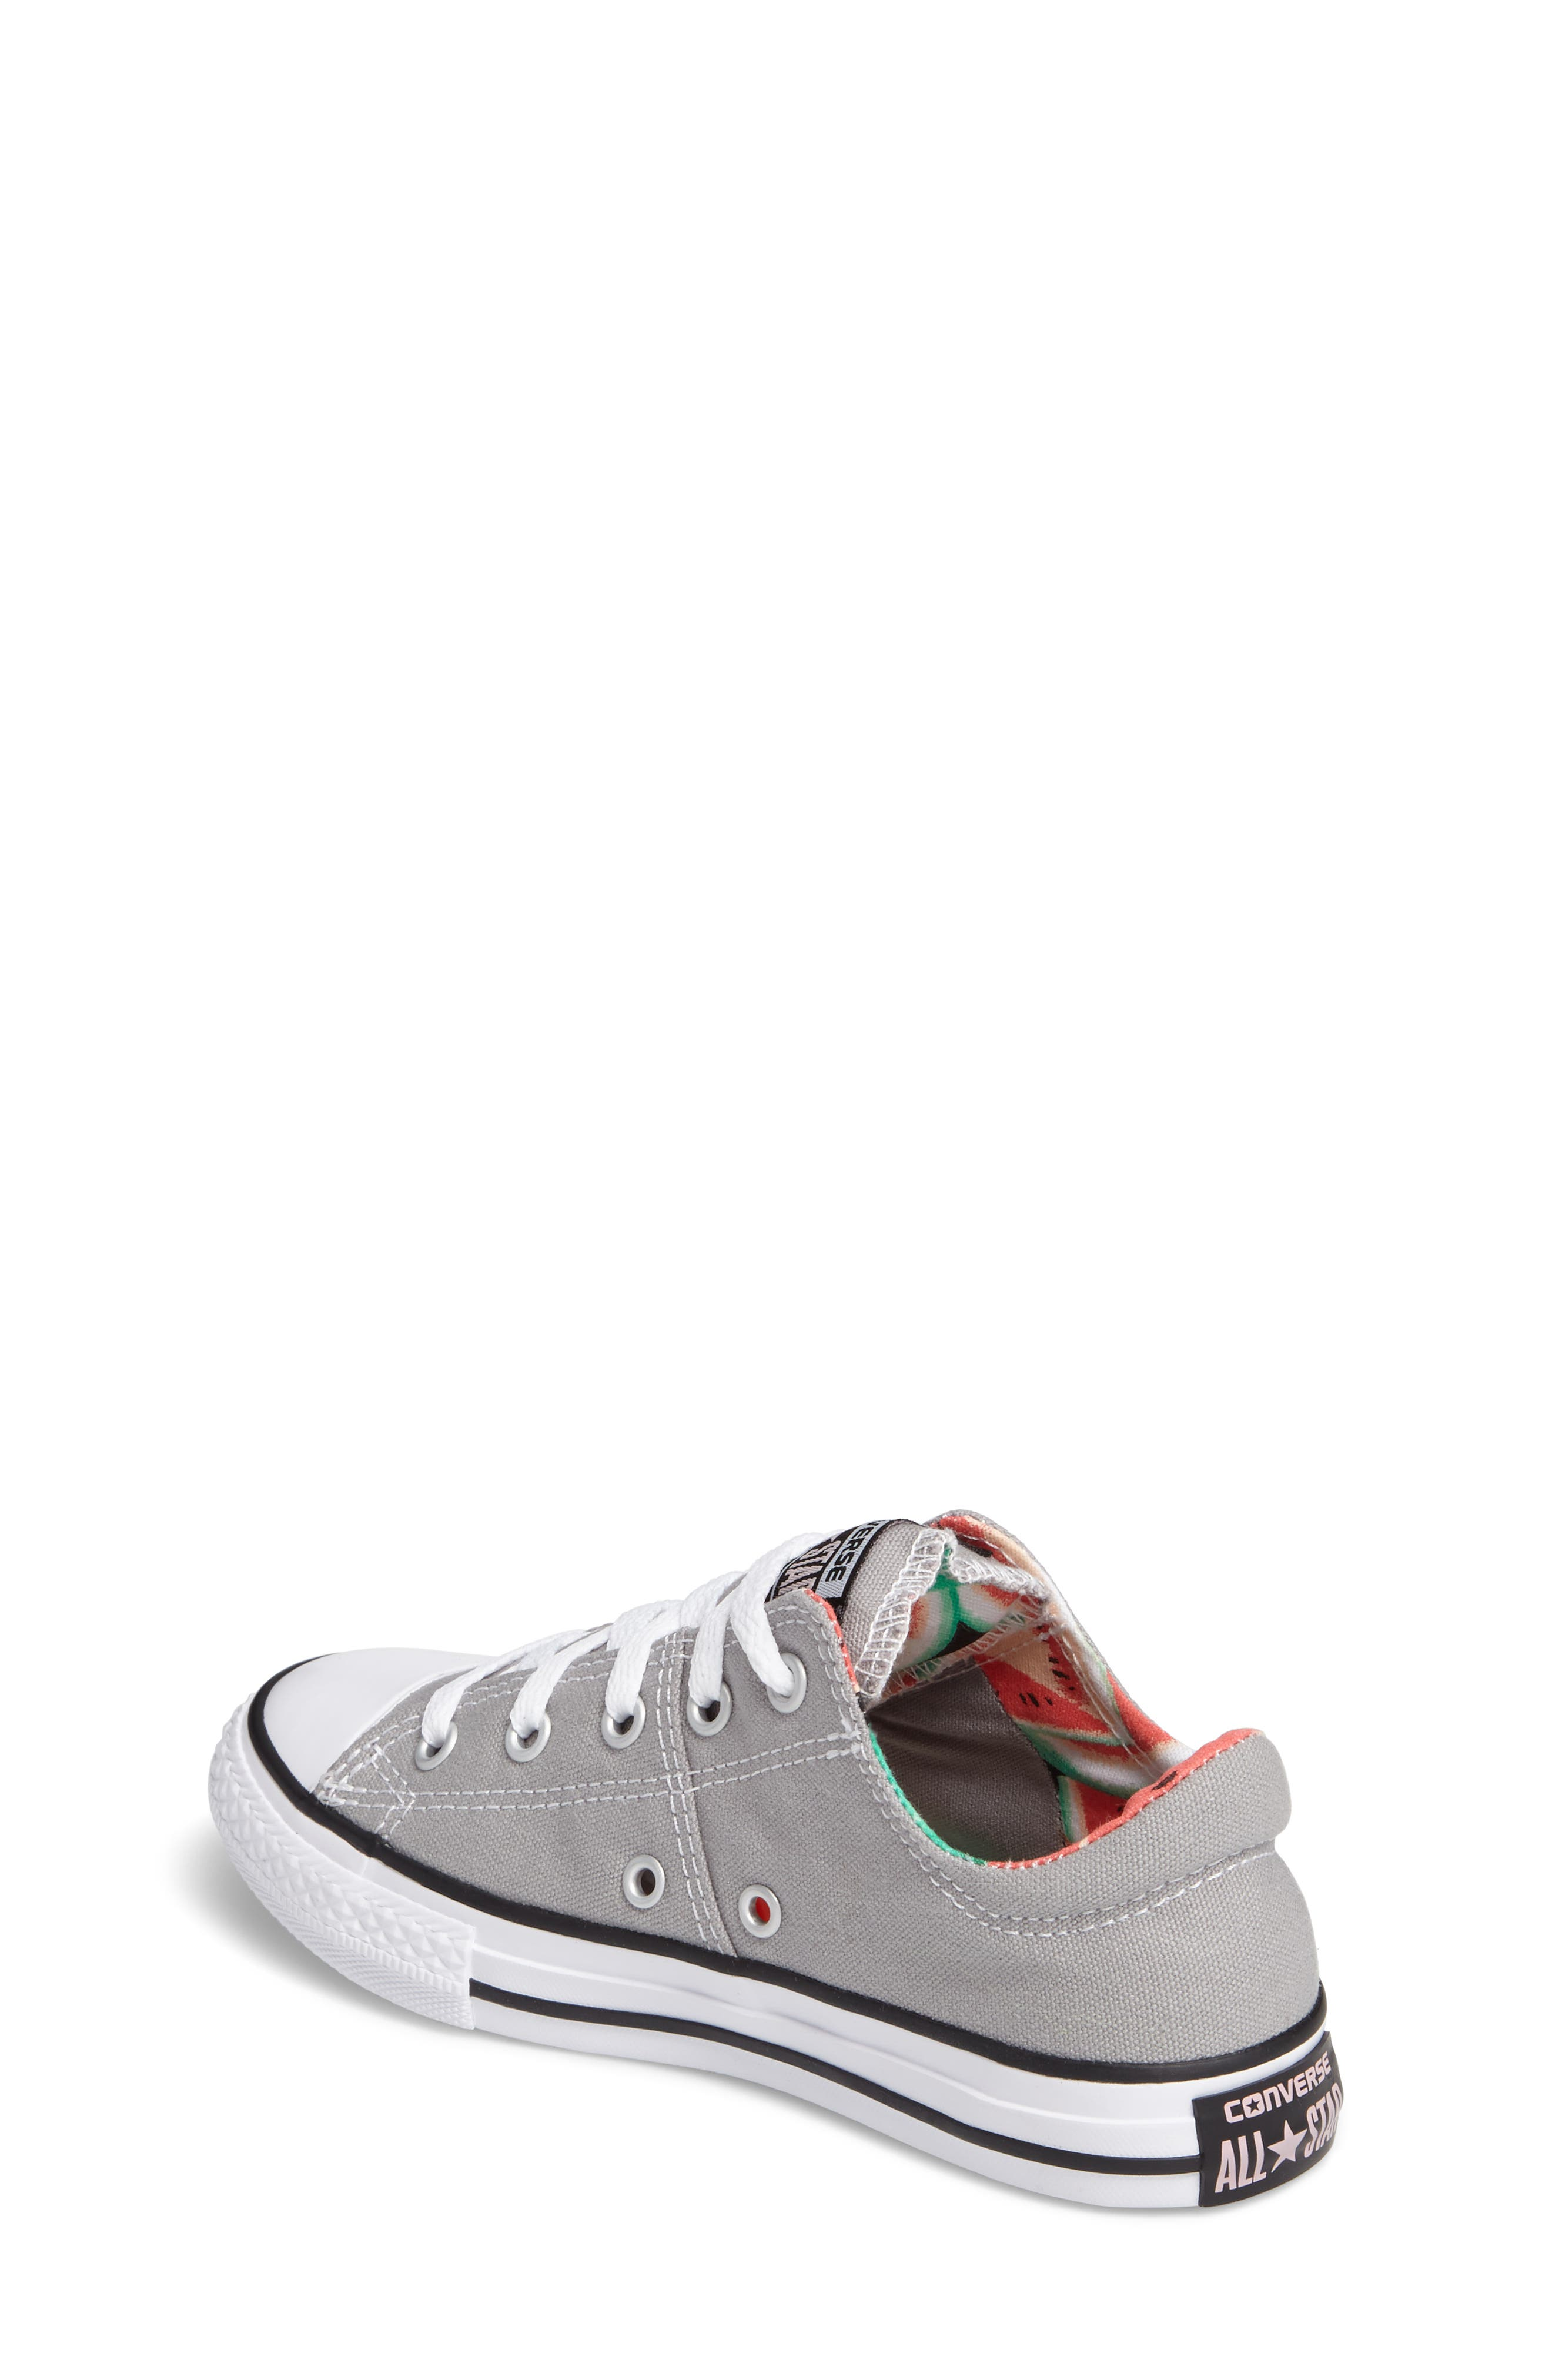 Chuck Taylor<sup>®</sup> All Star<sup>®</sup> Madison Low Top Sneaker,                             Alternate thumbnail 10, color,